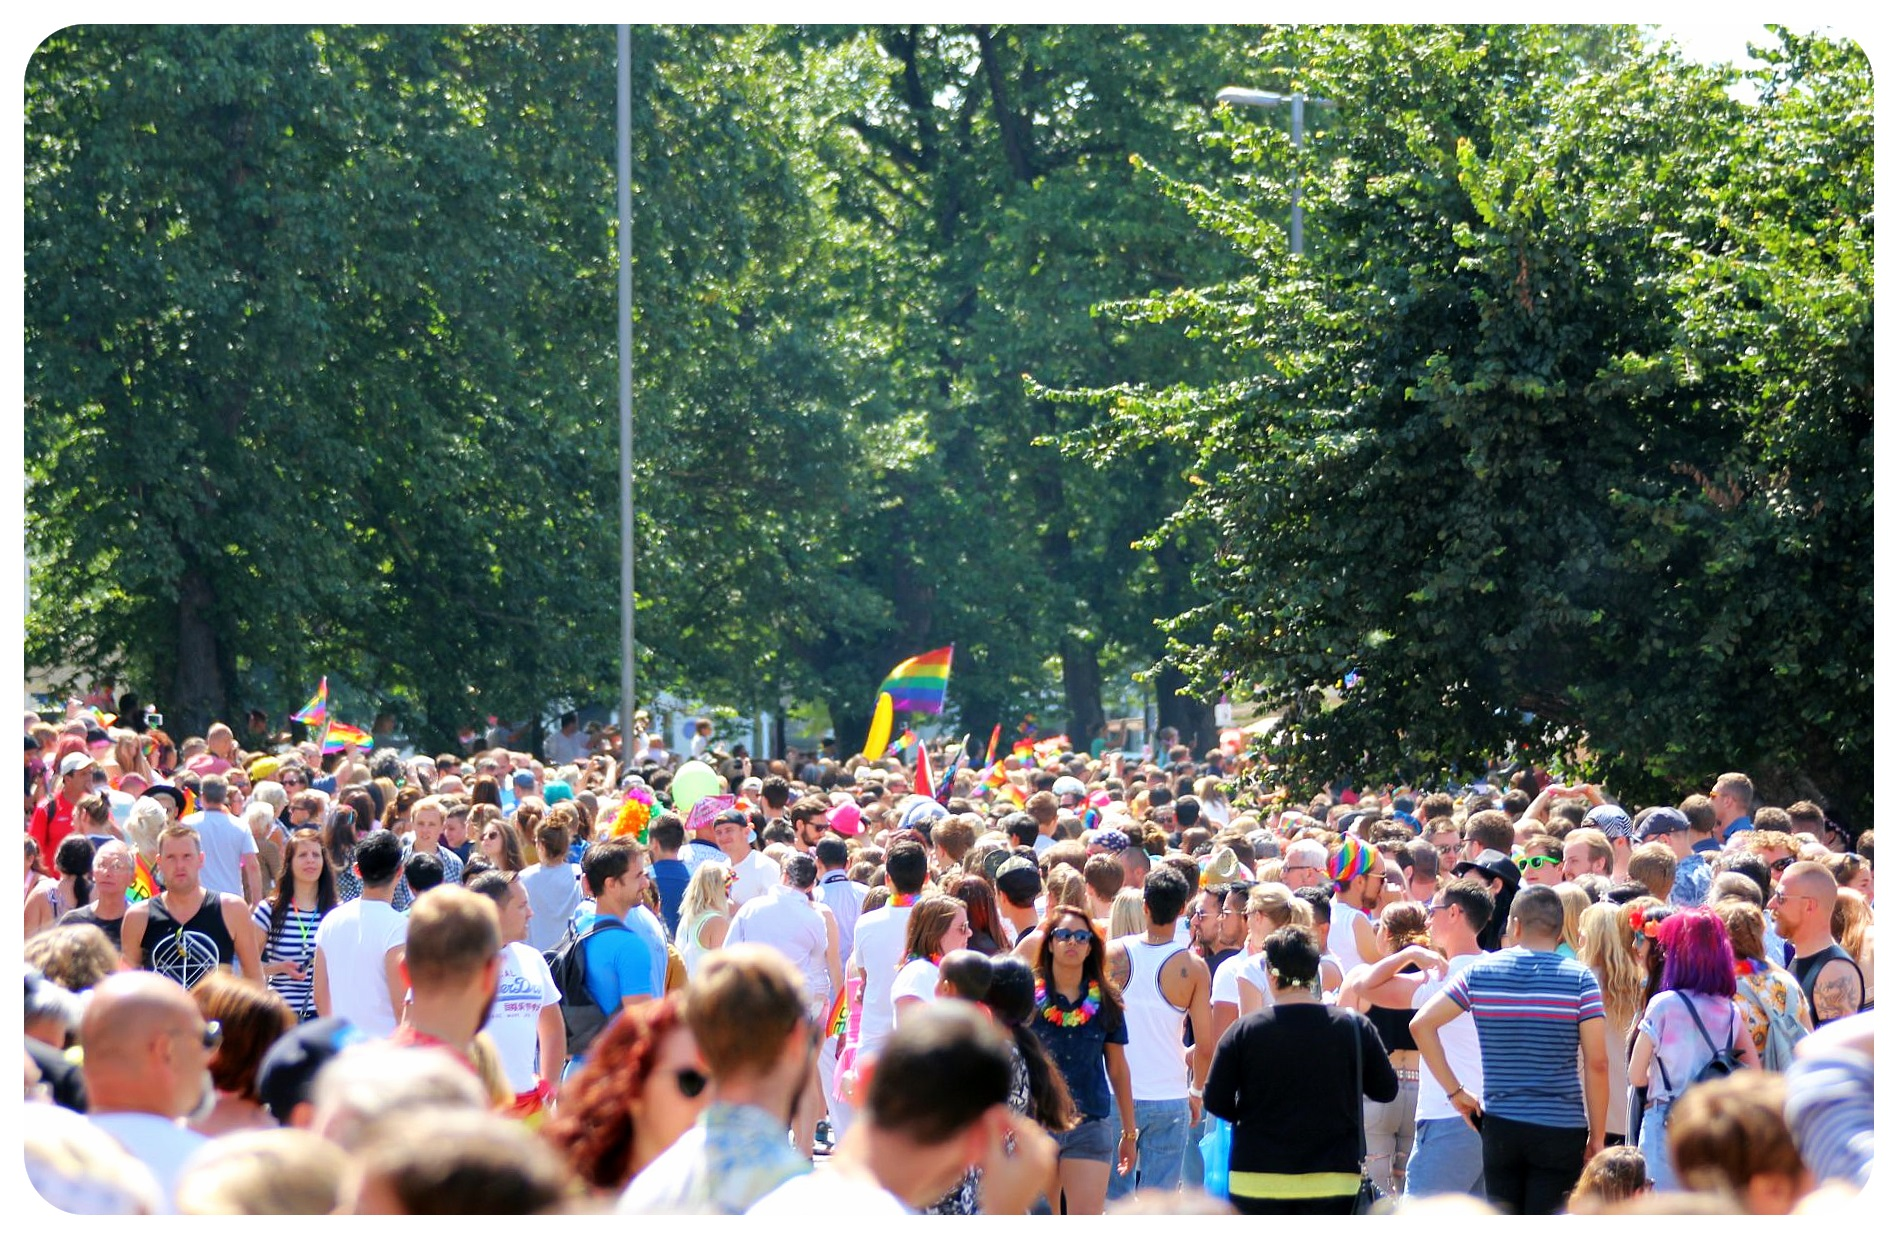 brighton pride crowds